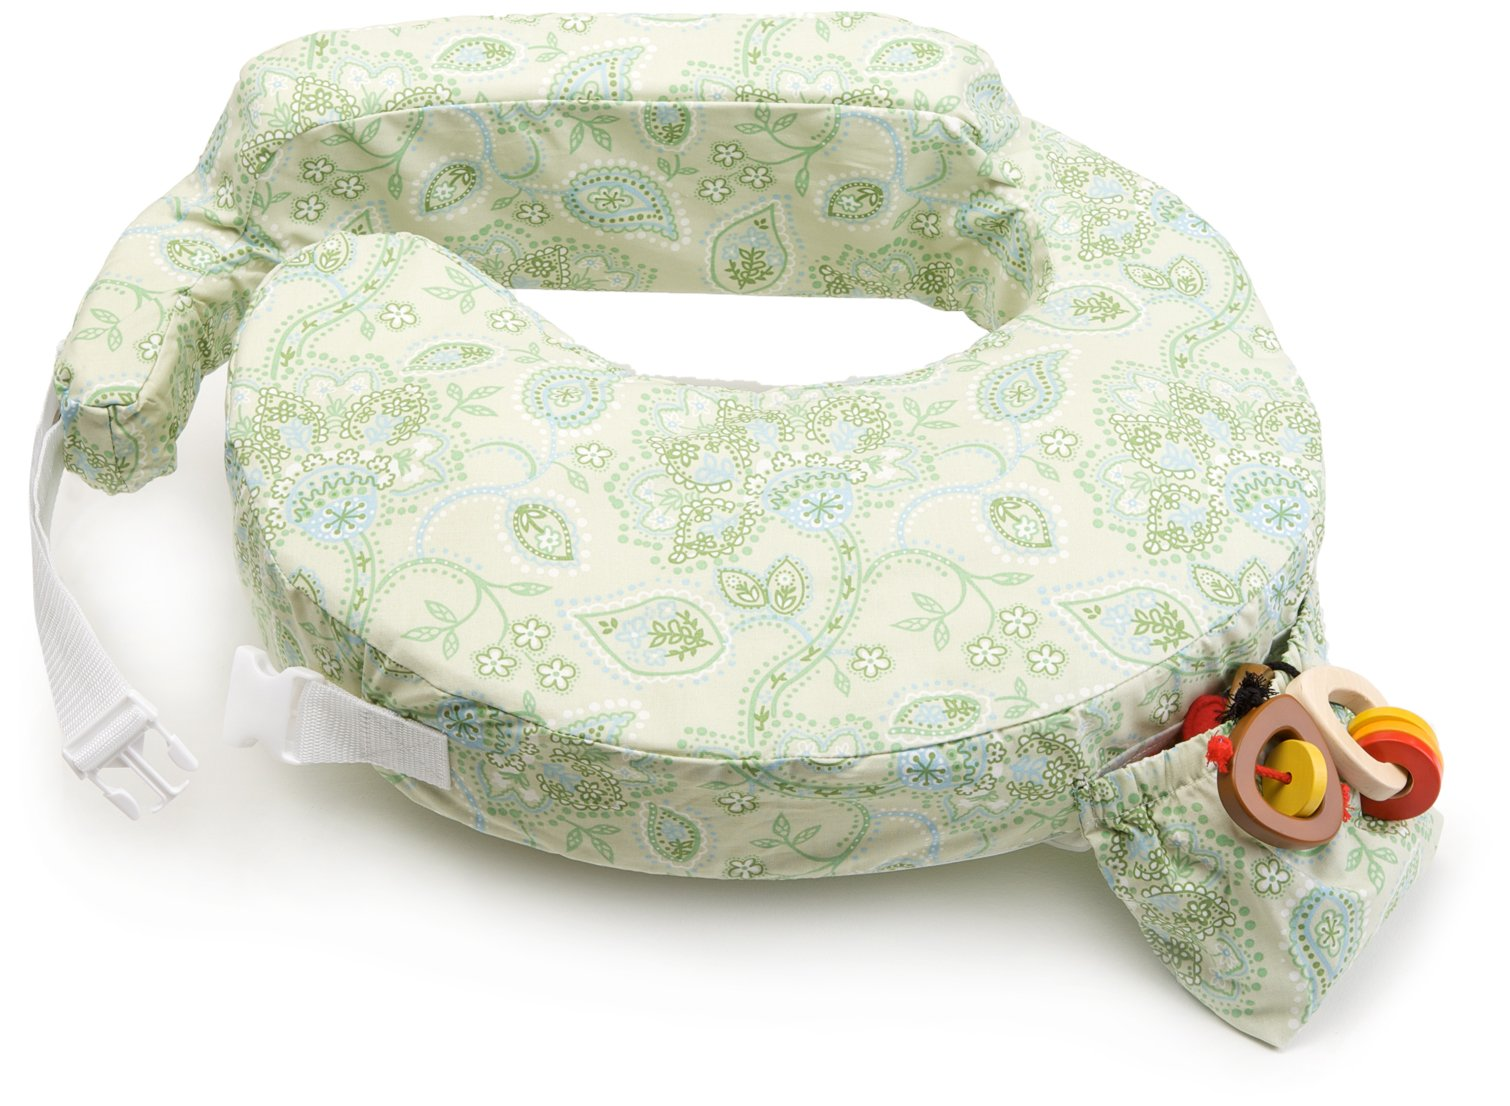 My Brest Friend Inflatable Travel Nursing Pillow - Maternity Breastfeeding Support, GreenPaisley by My Brest Friend